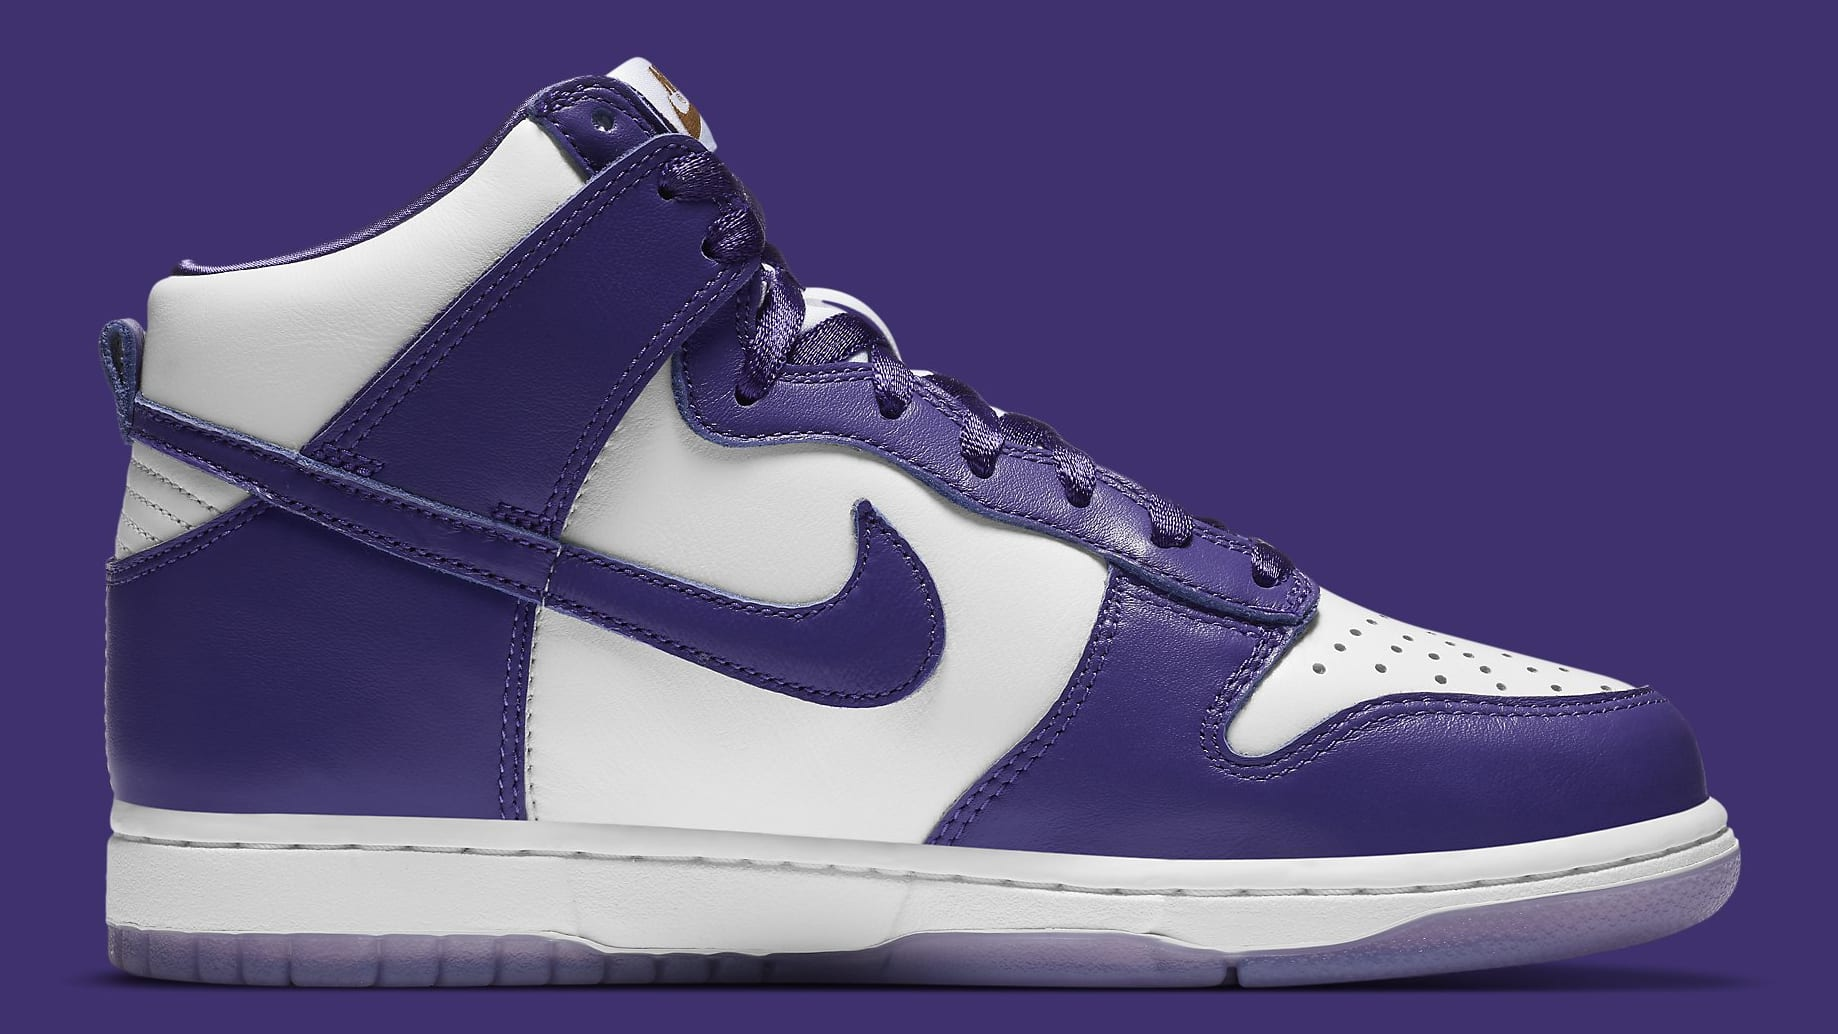 Nike Dunk High Women's Court Purple Release Date DC5382-100 Medial